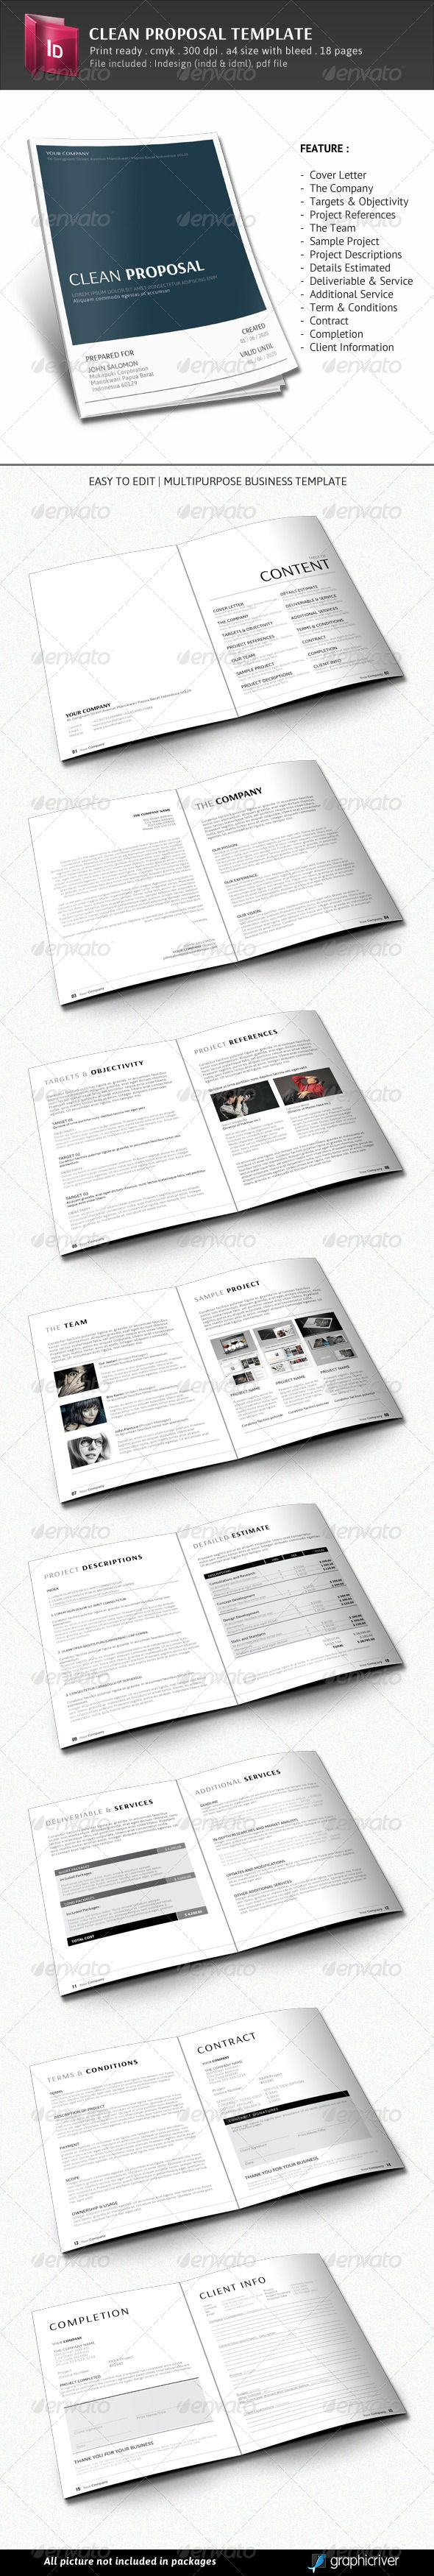 Clean Proposal Template 122 best Business proposals